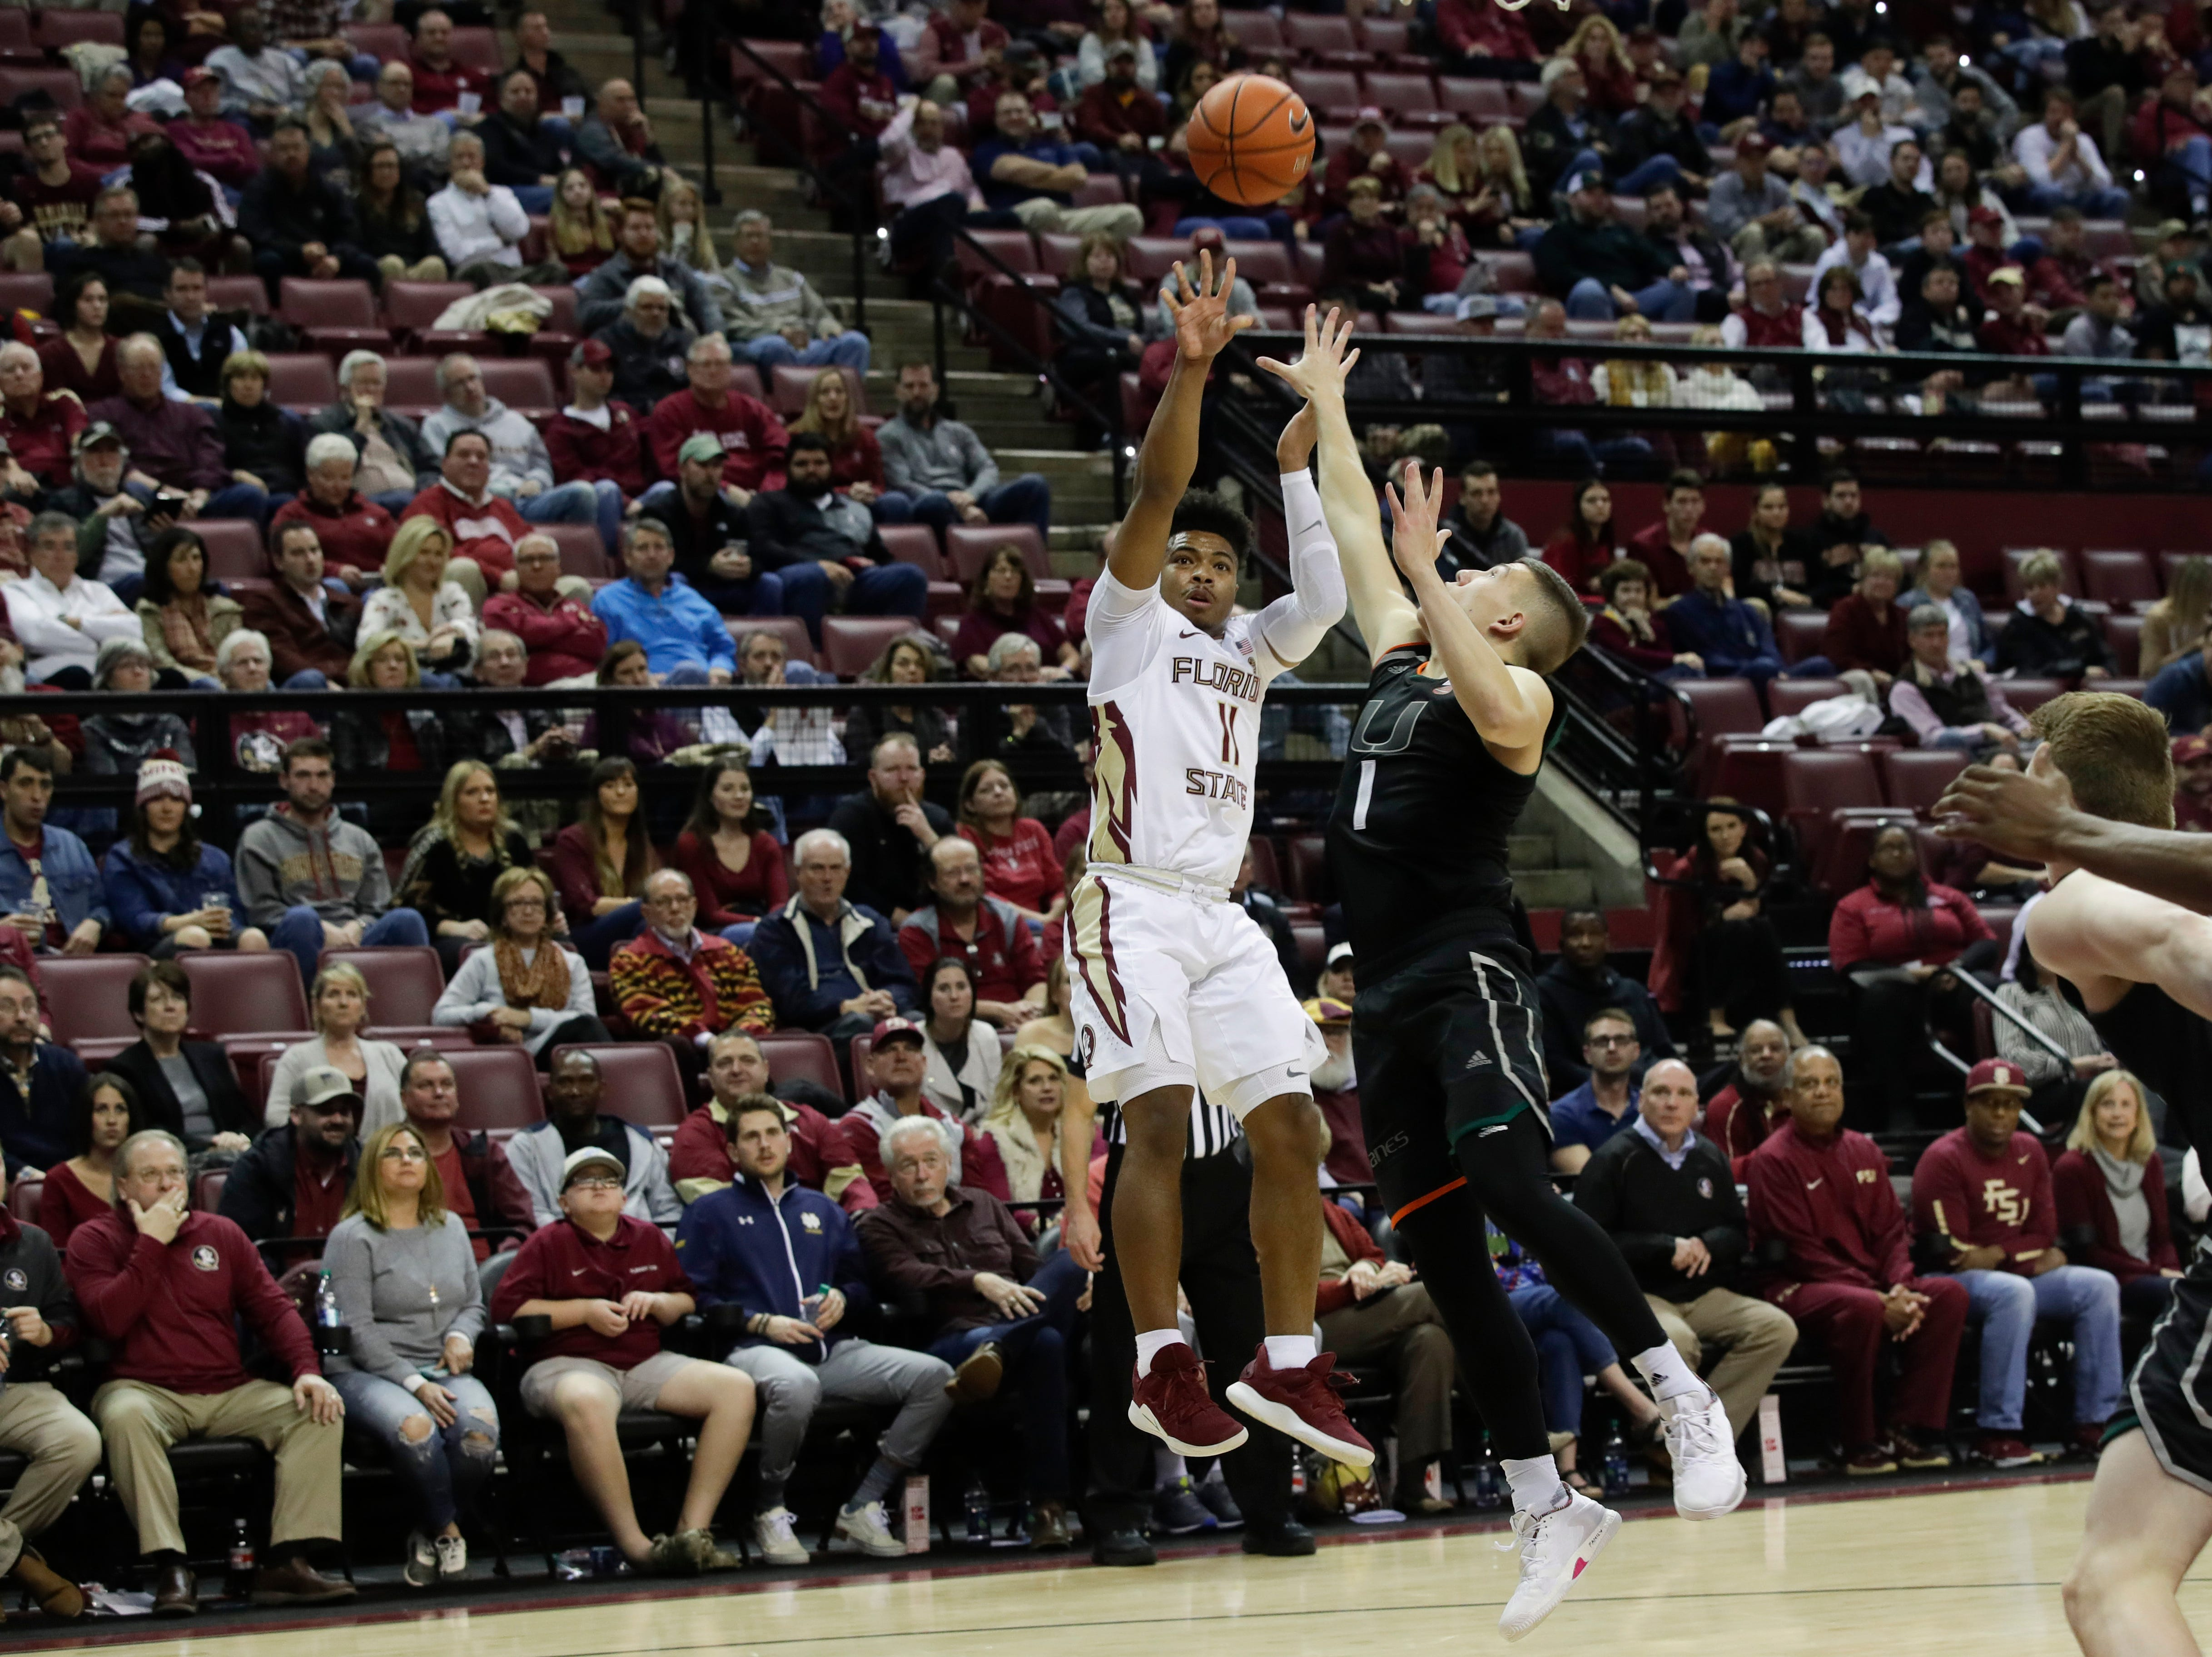 Florida State Seminoles guard David Nichols (11) shoots a jumper during a game between FSU and University of Miami Wednesday, Jan. 9, 2019.